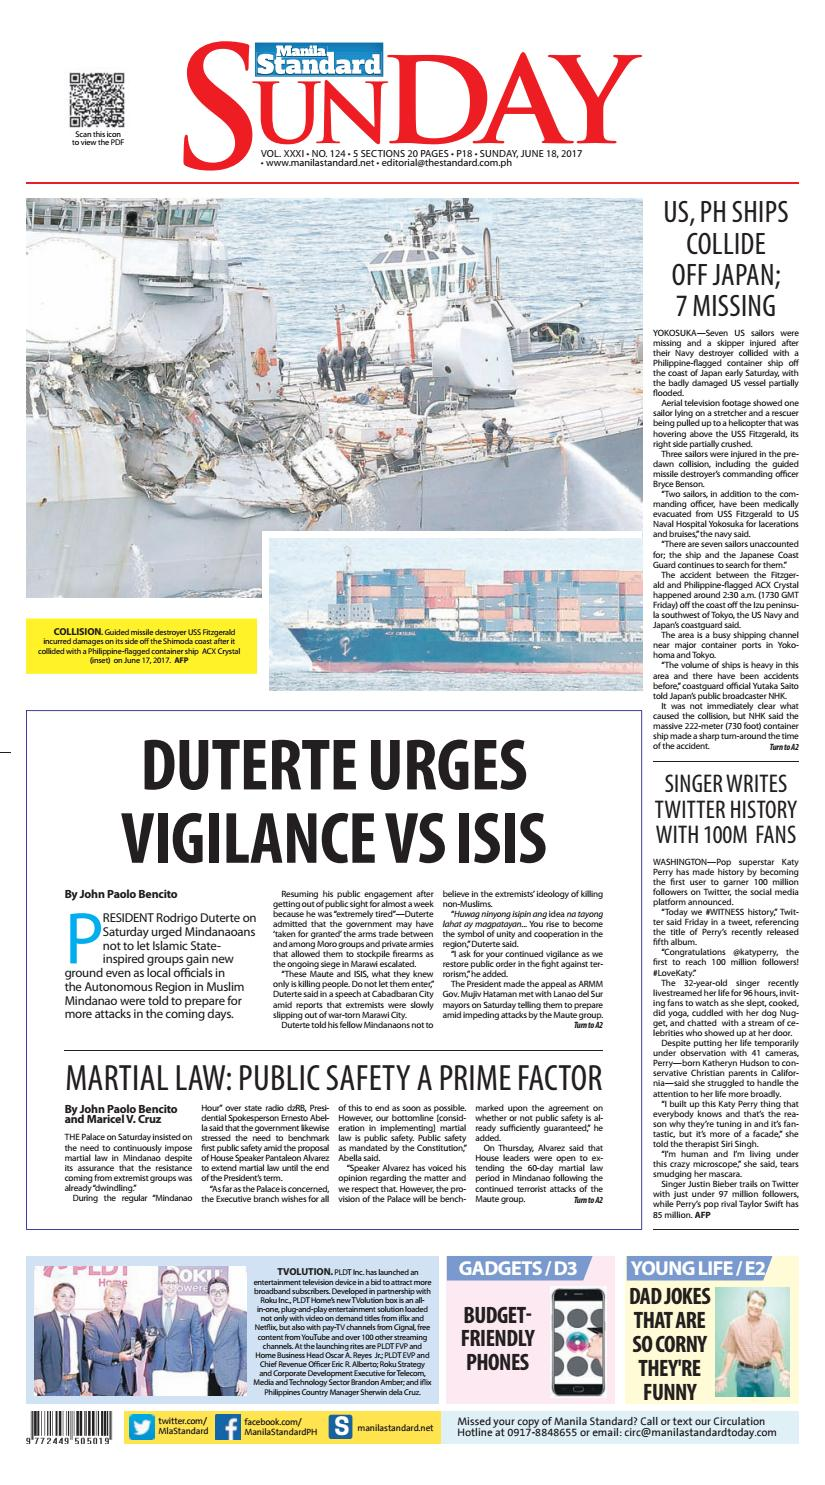 Manila Standard - 2017 June 18 - Sunday by Manila Standard - issuu